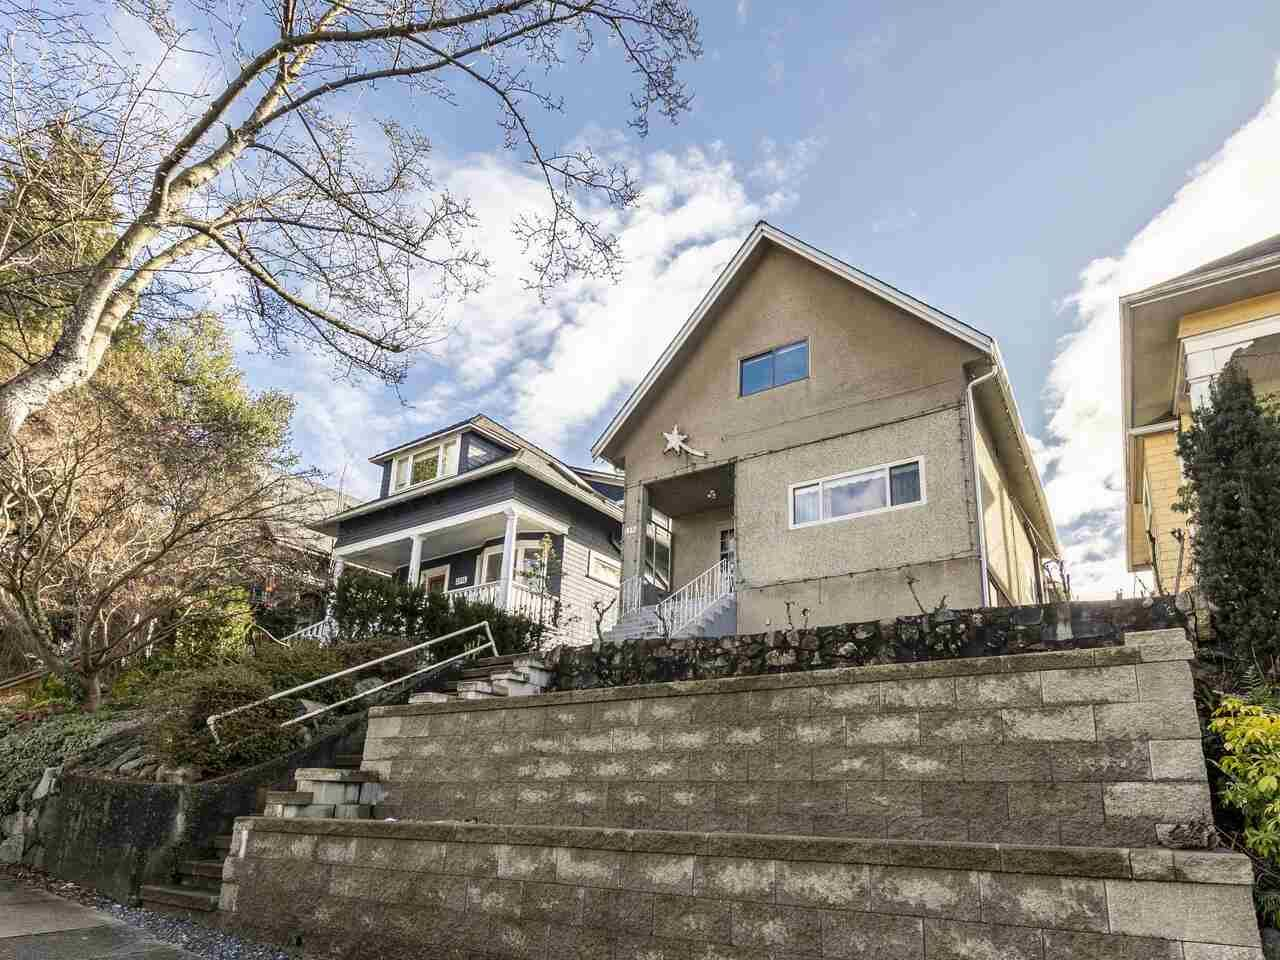 """Photo 5: Photos: 1550 GRANT Street in Vancouver: Grandview Woodland House for sale in """"GRANVIEW"""" (Vancouver East)  : MLS®# R2539844"""